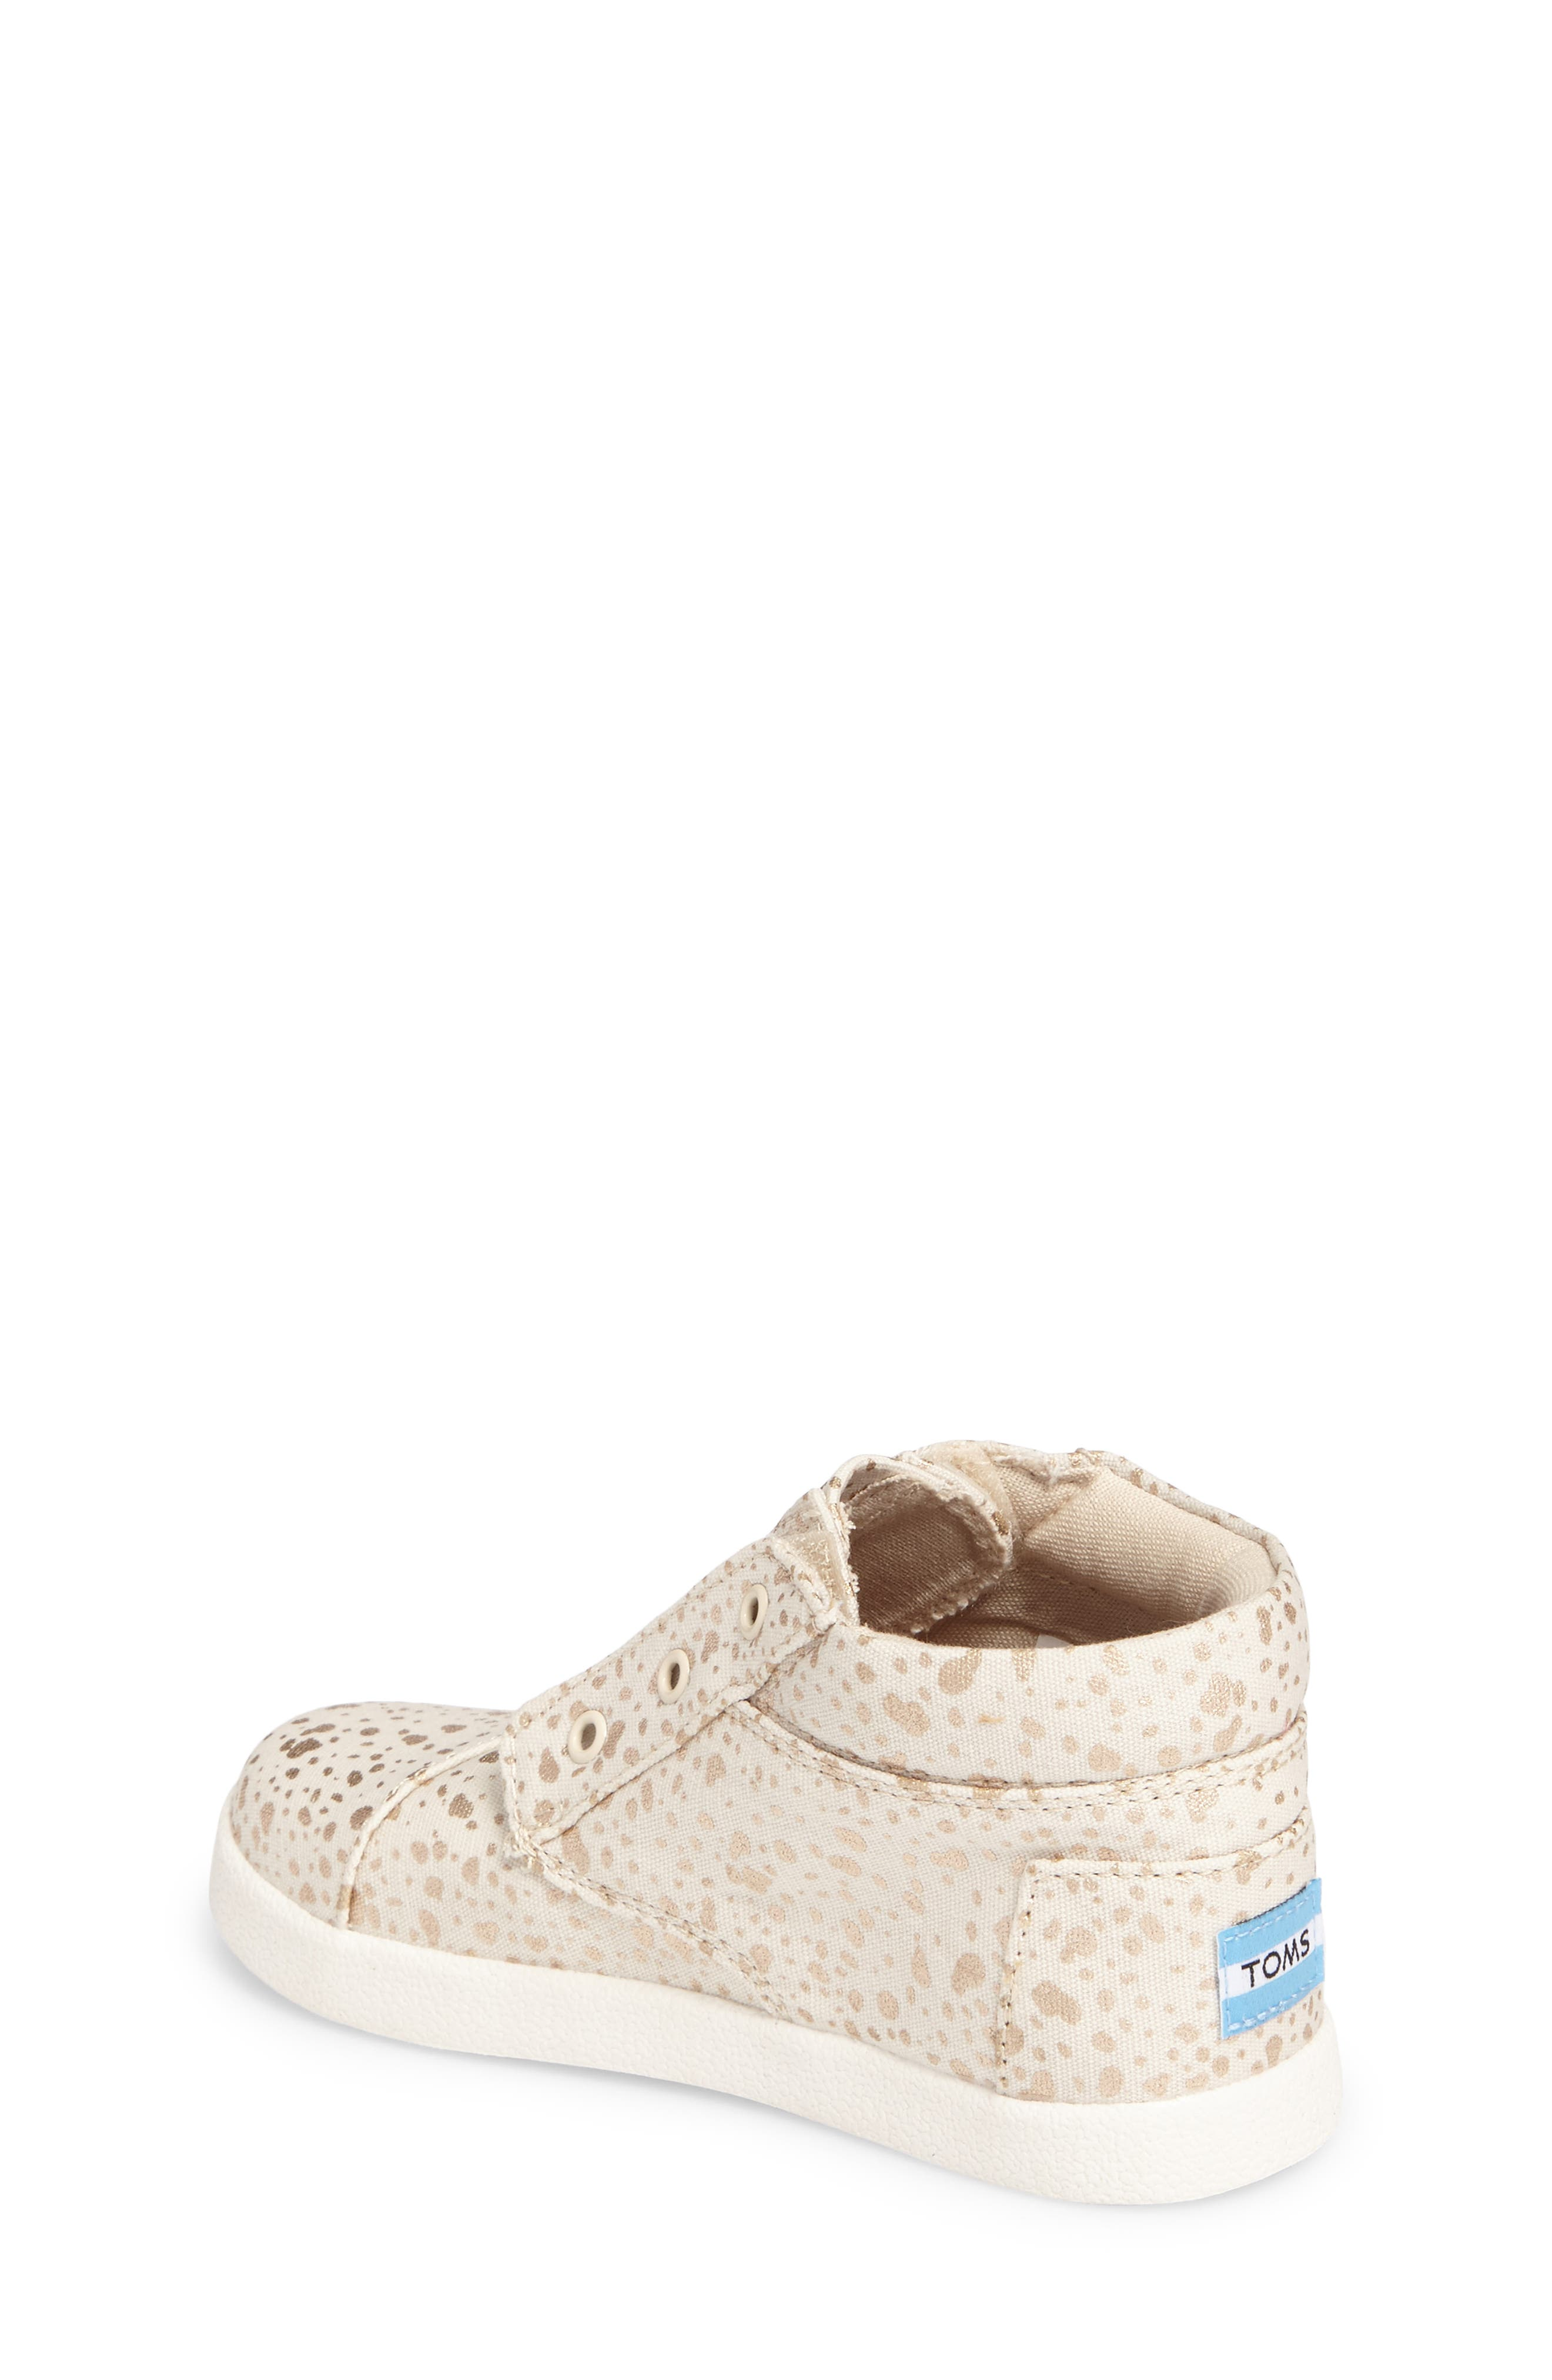 baby shoes c crib nordstrom all sale toms kids cribs